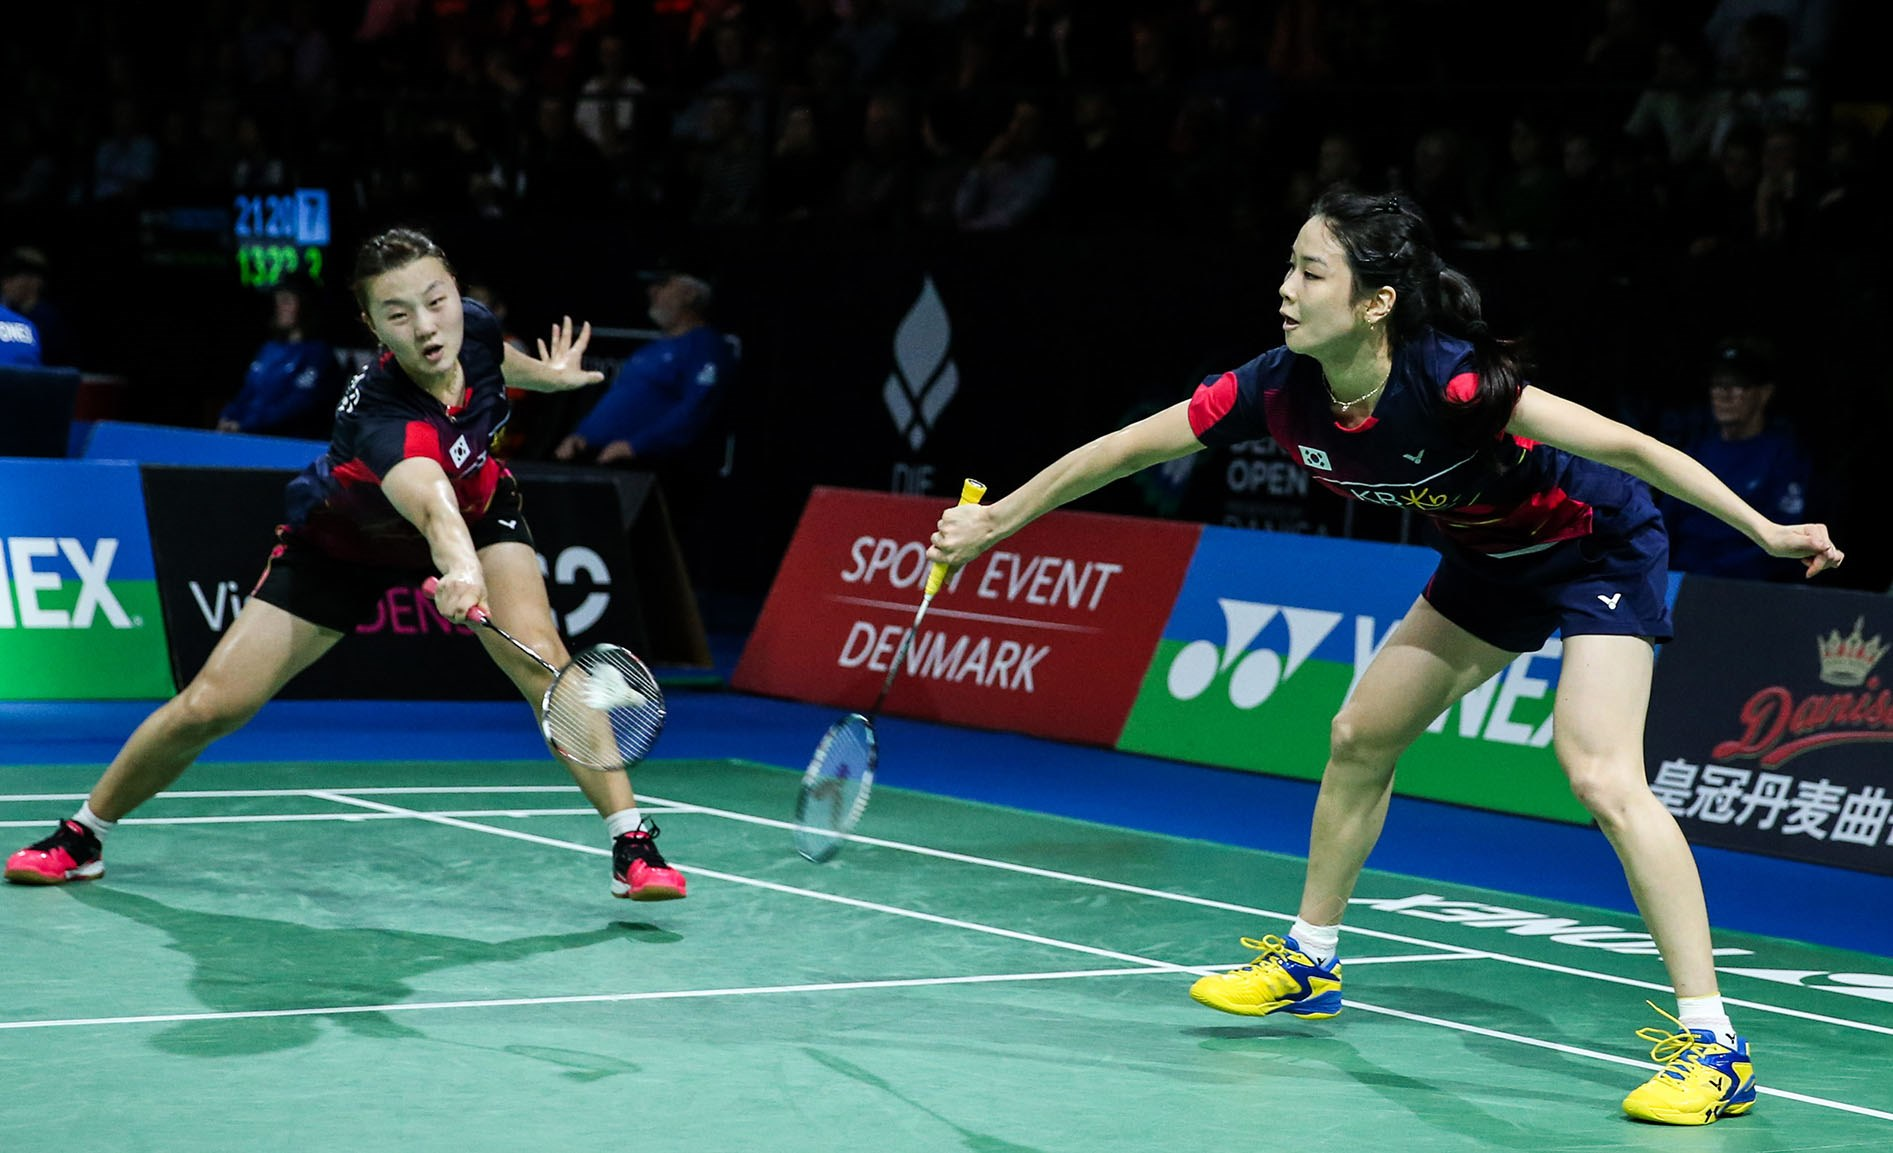 denmark-open-2016-day-5-jung-kyung-eun-shin-seung-chan-of-korea